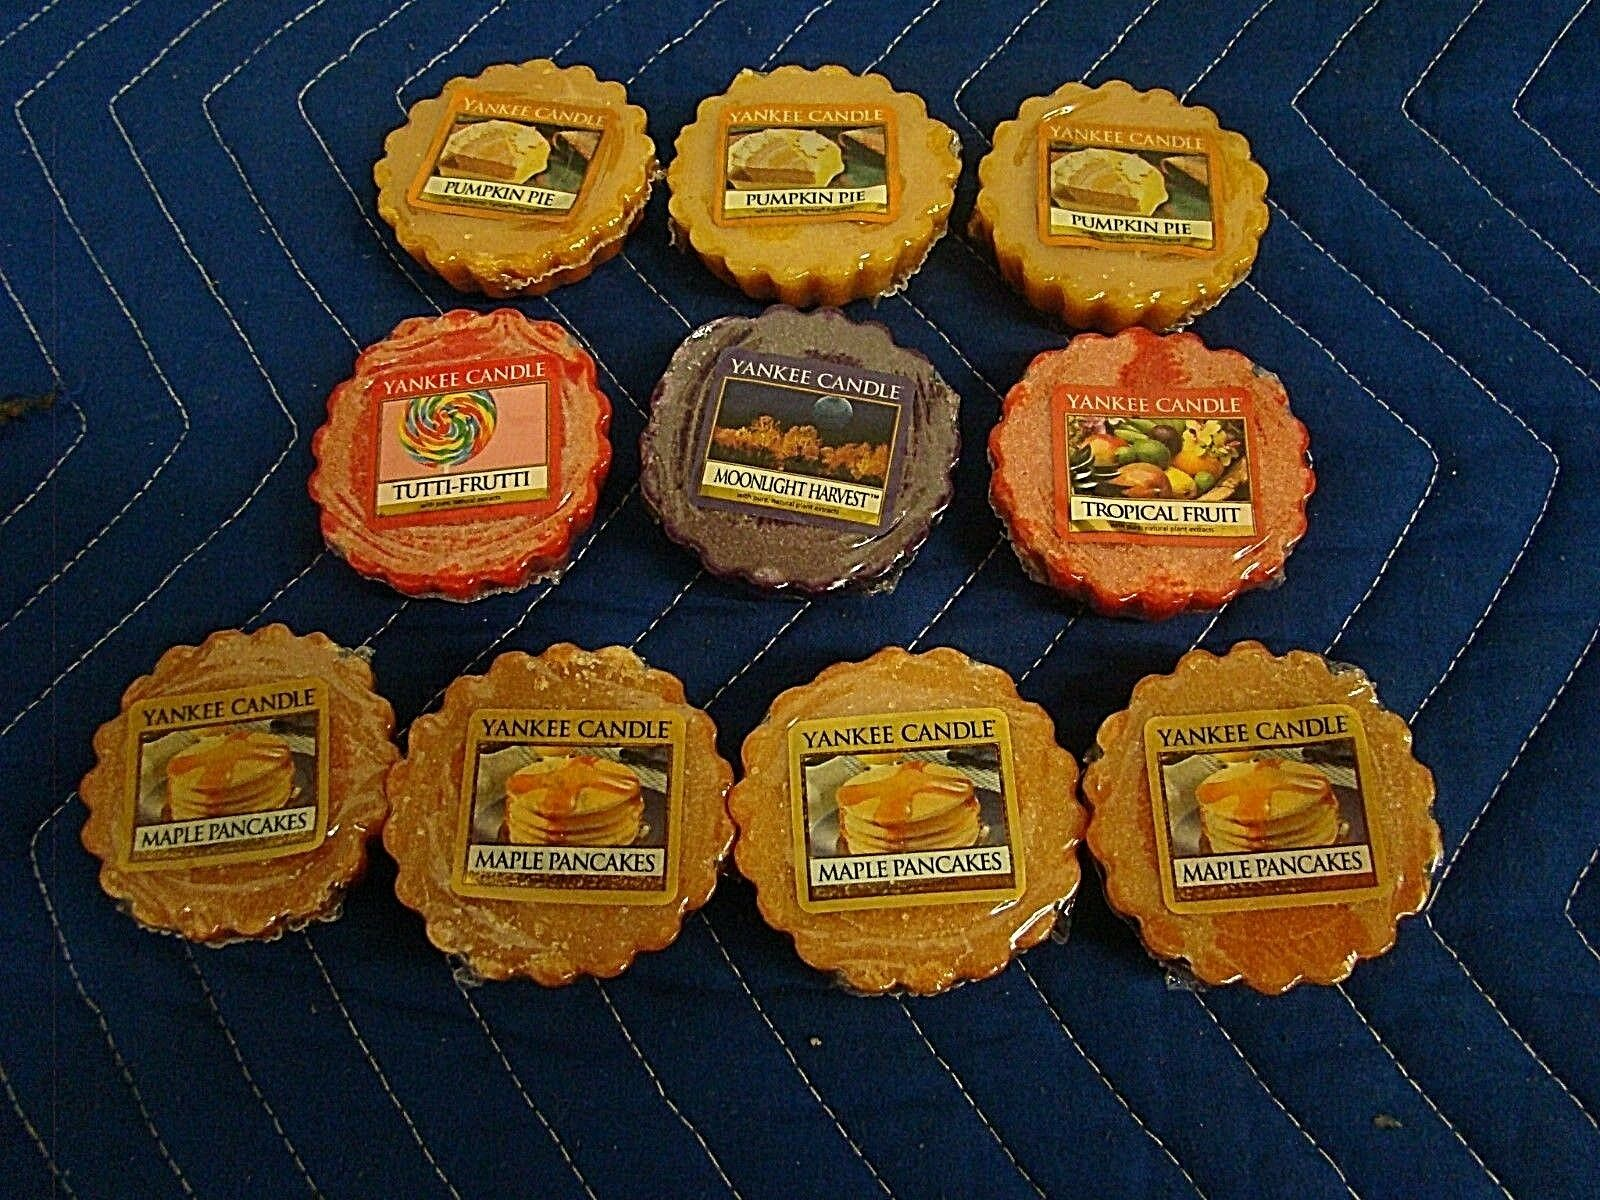 LOT OF 10  Yankee Candle Pumpkin Pie, Maples Pancakes, Tutti Fruiti, Moonlight..